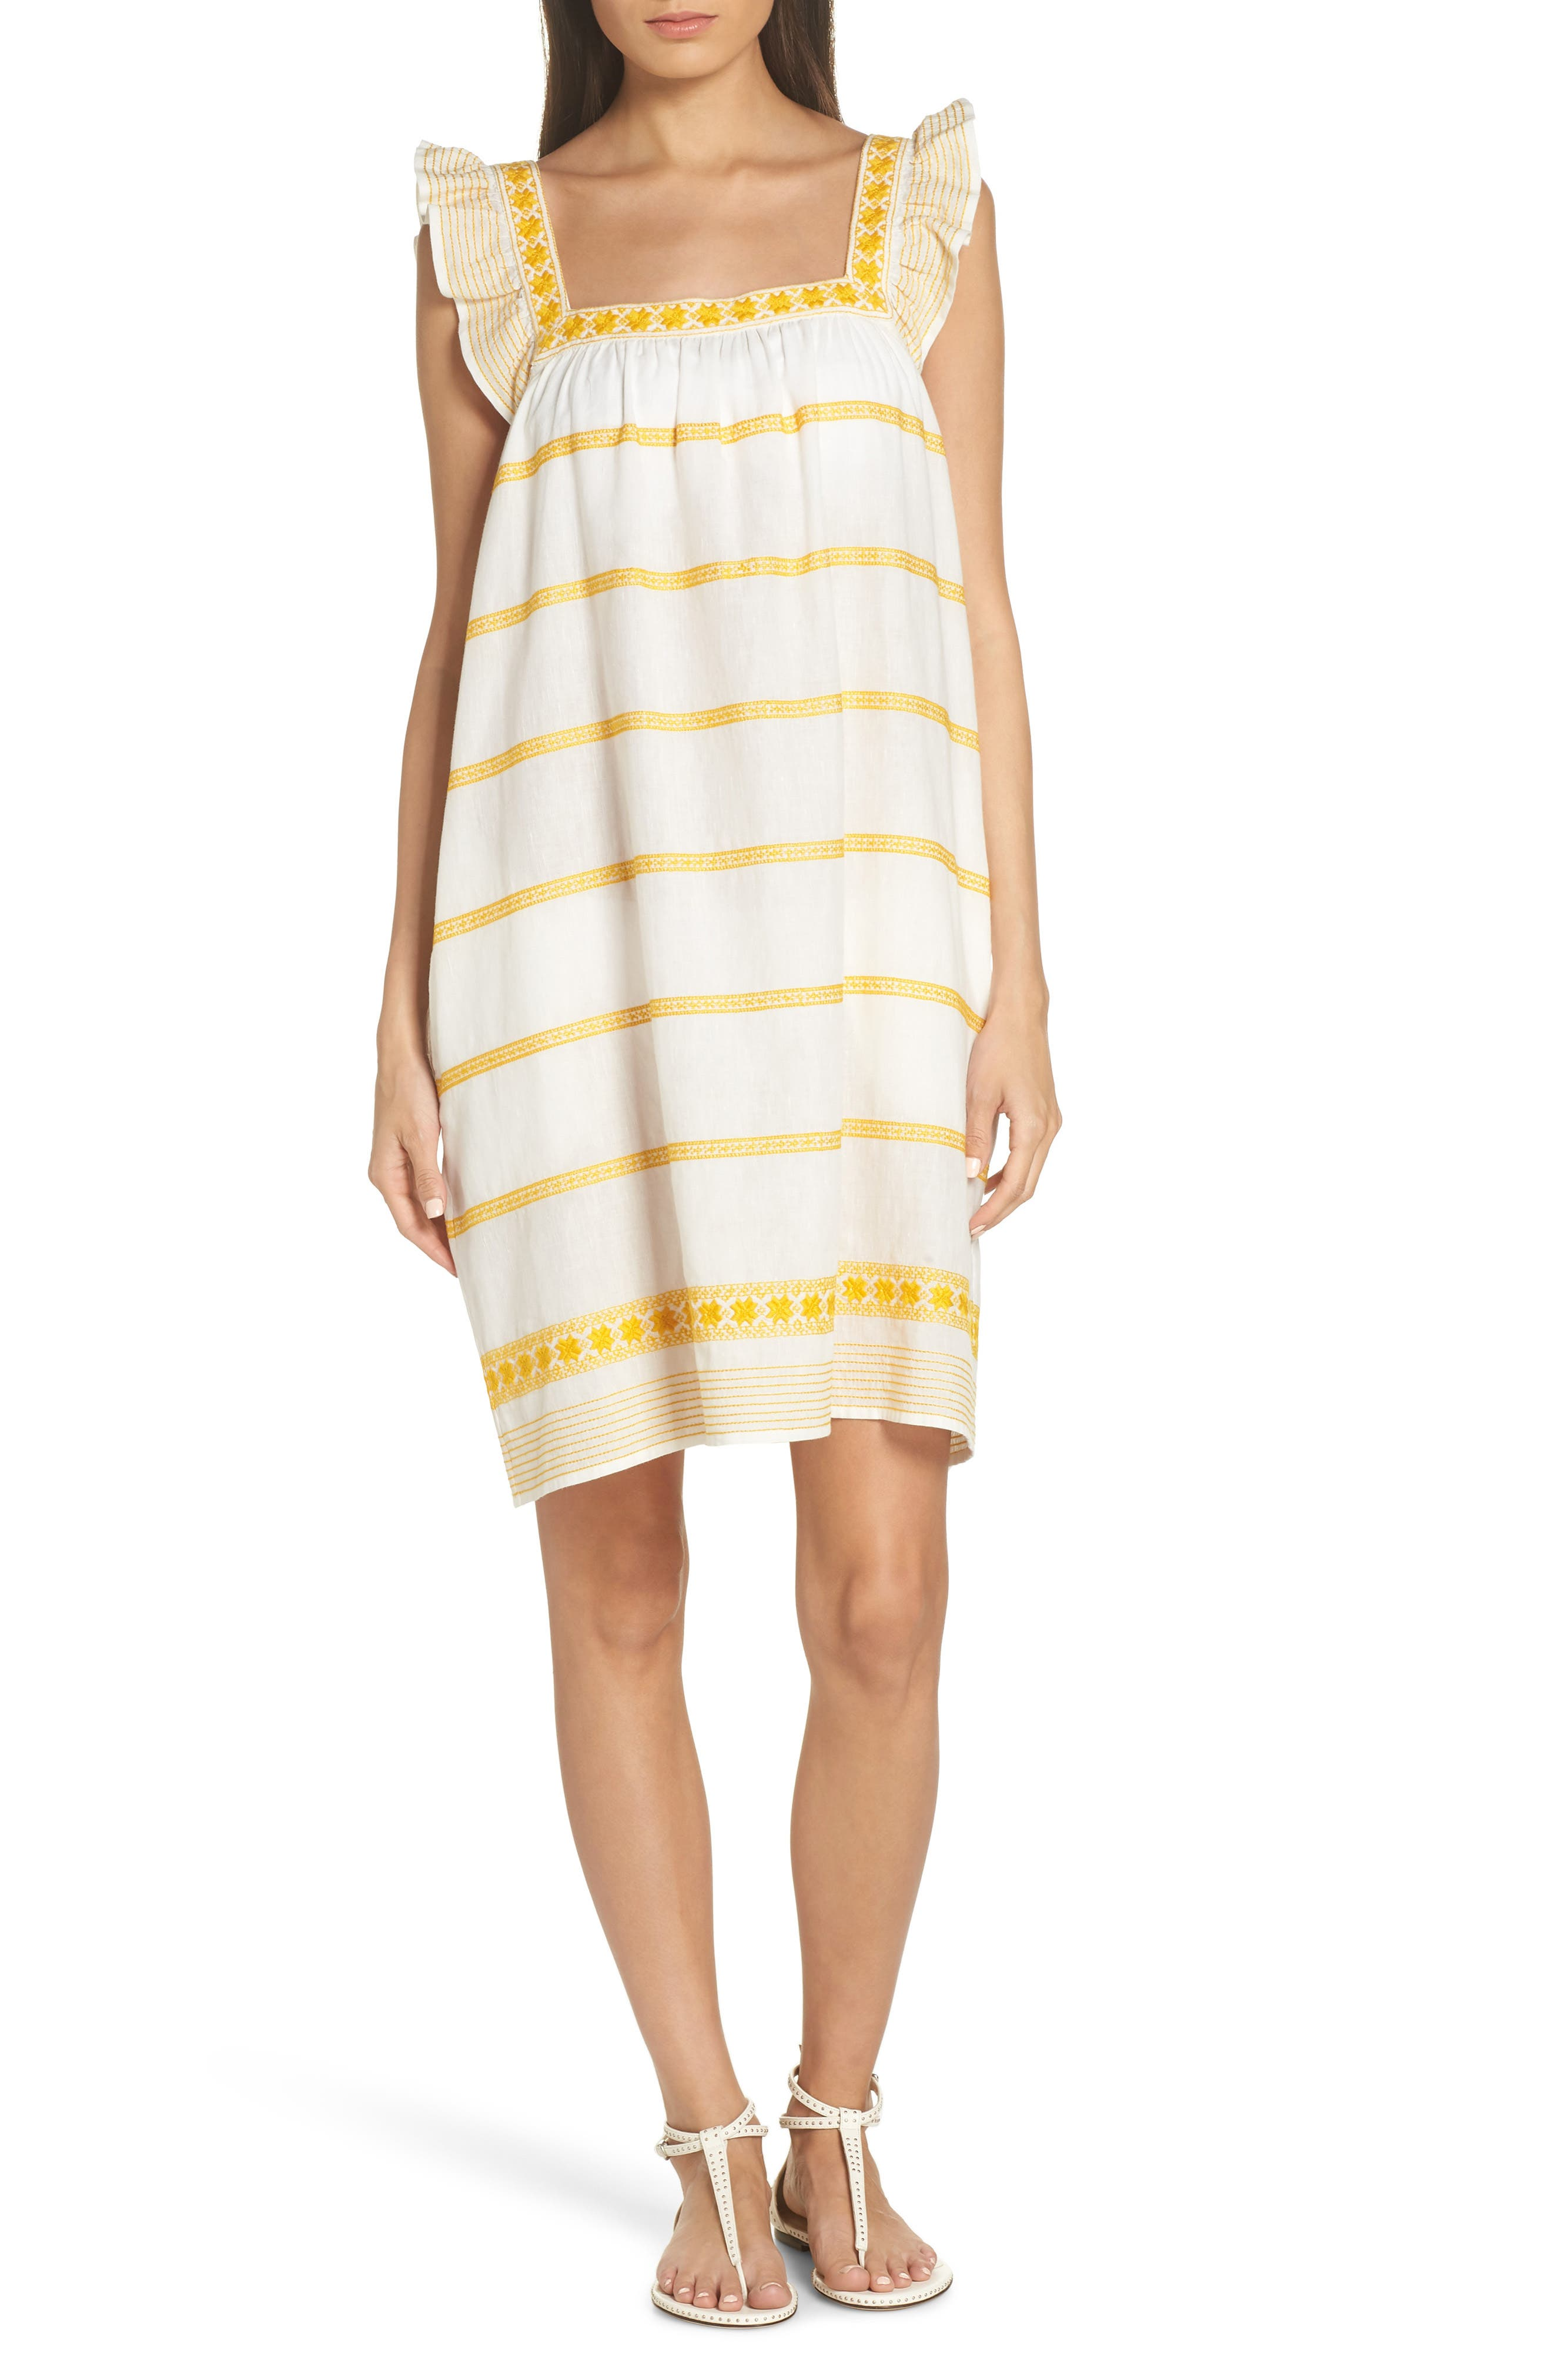 Sleeveless Striped Embroidered Sun Dress W/ Ruffle Detail in Yellow